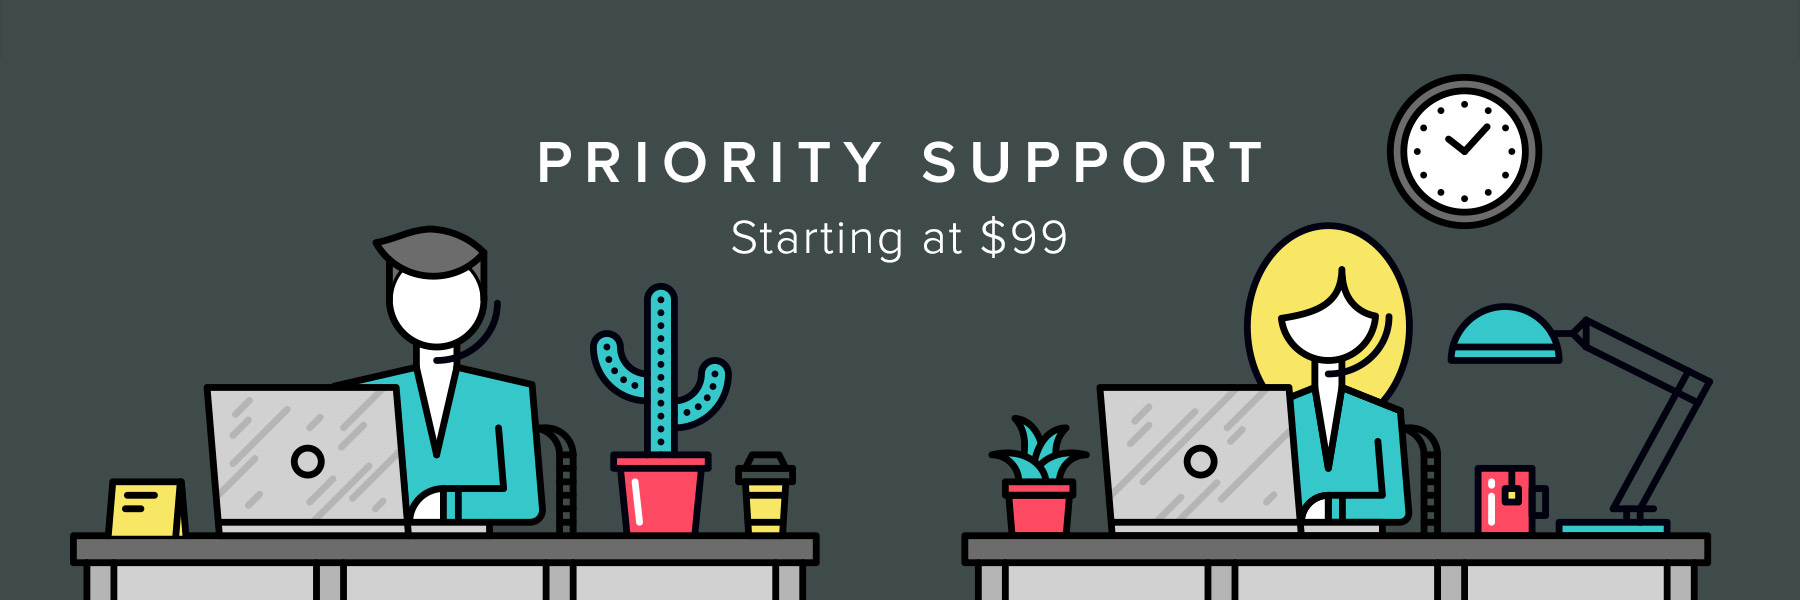 priority-support